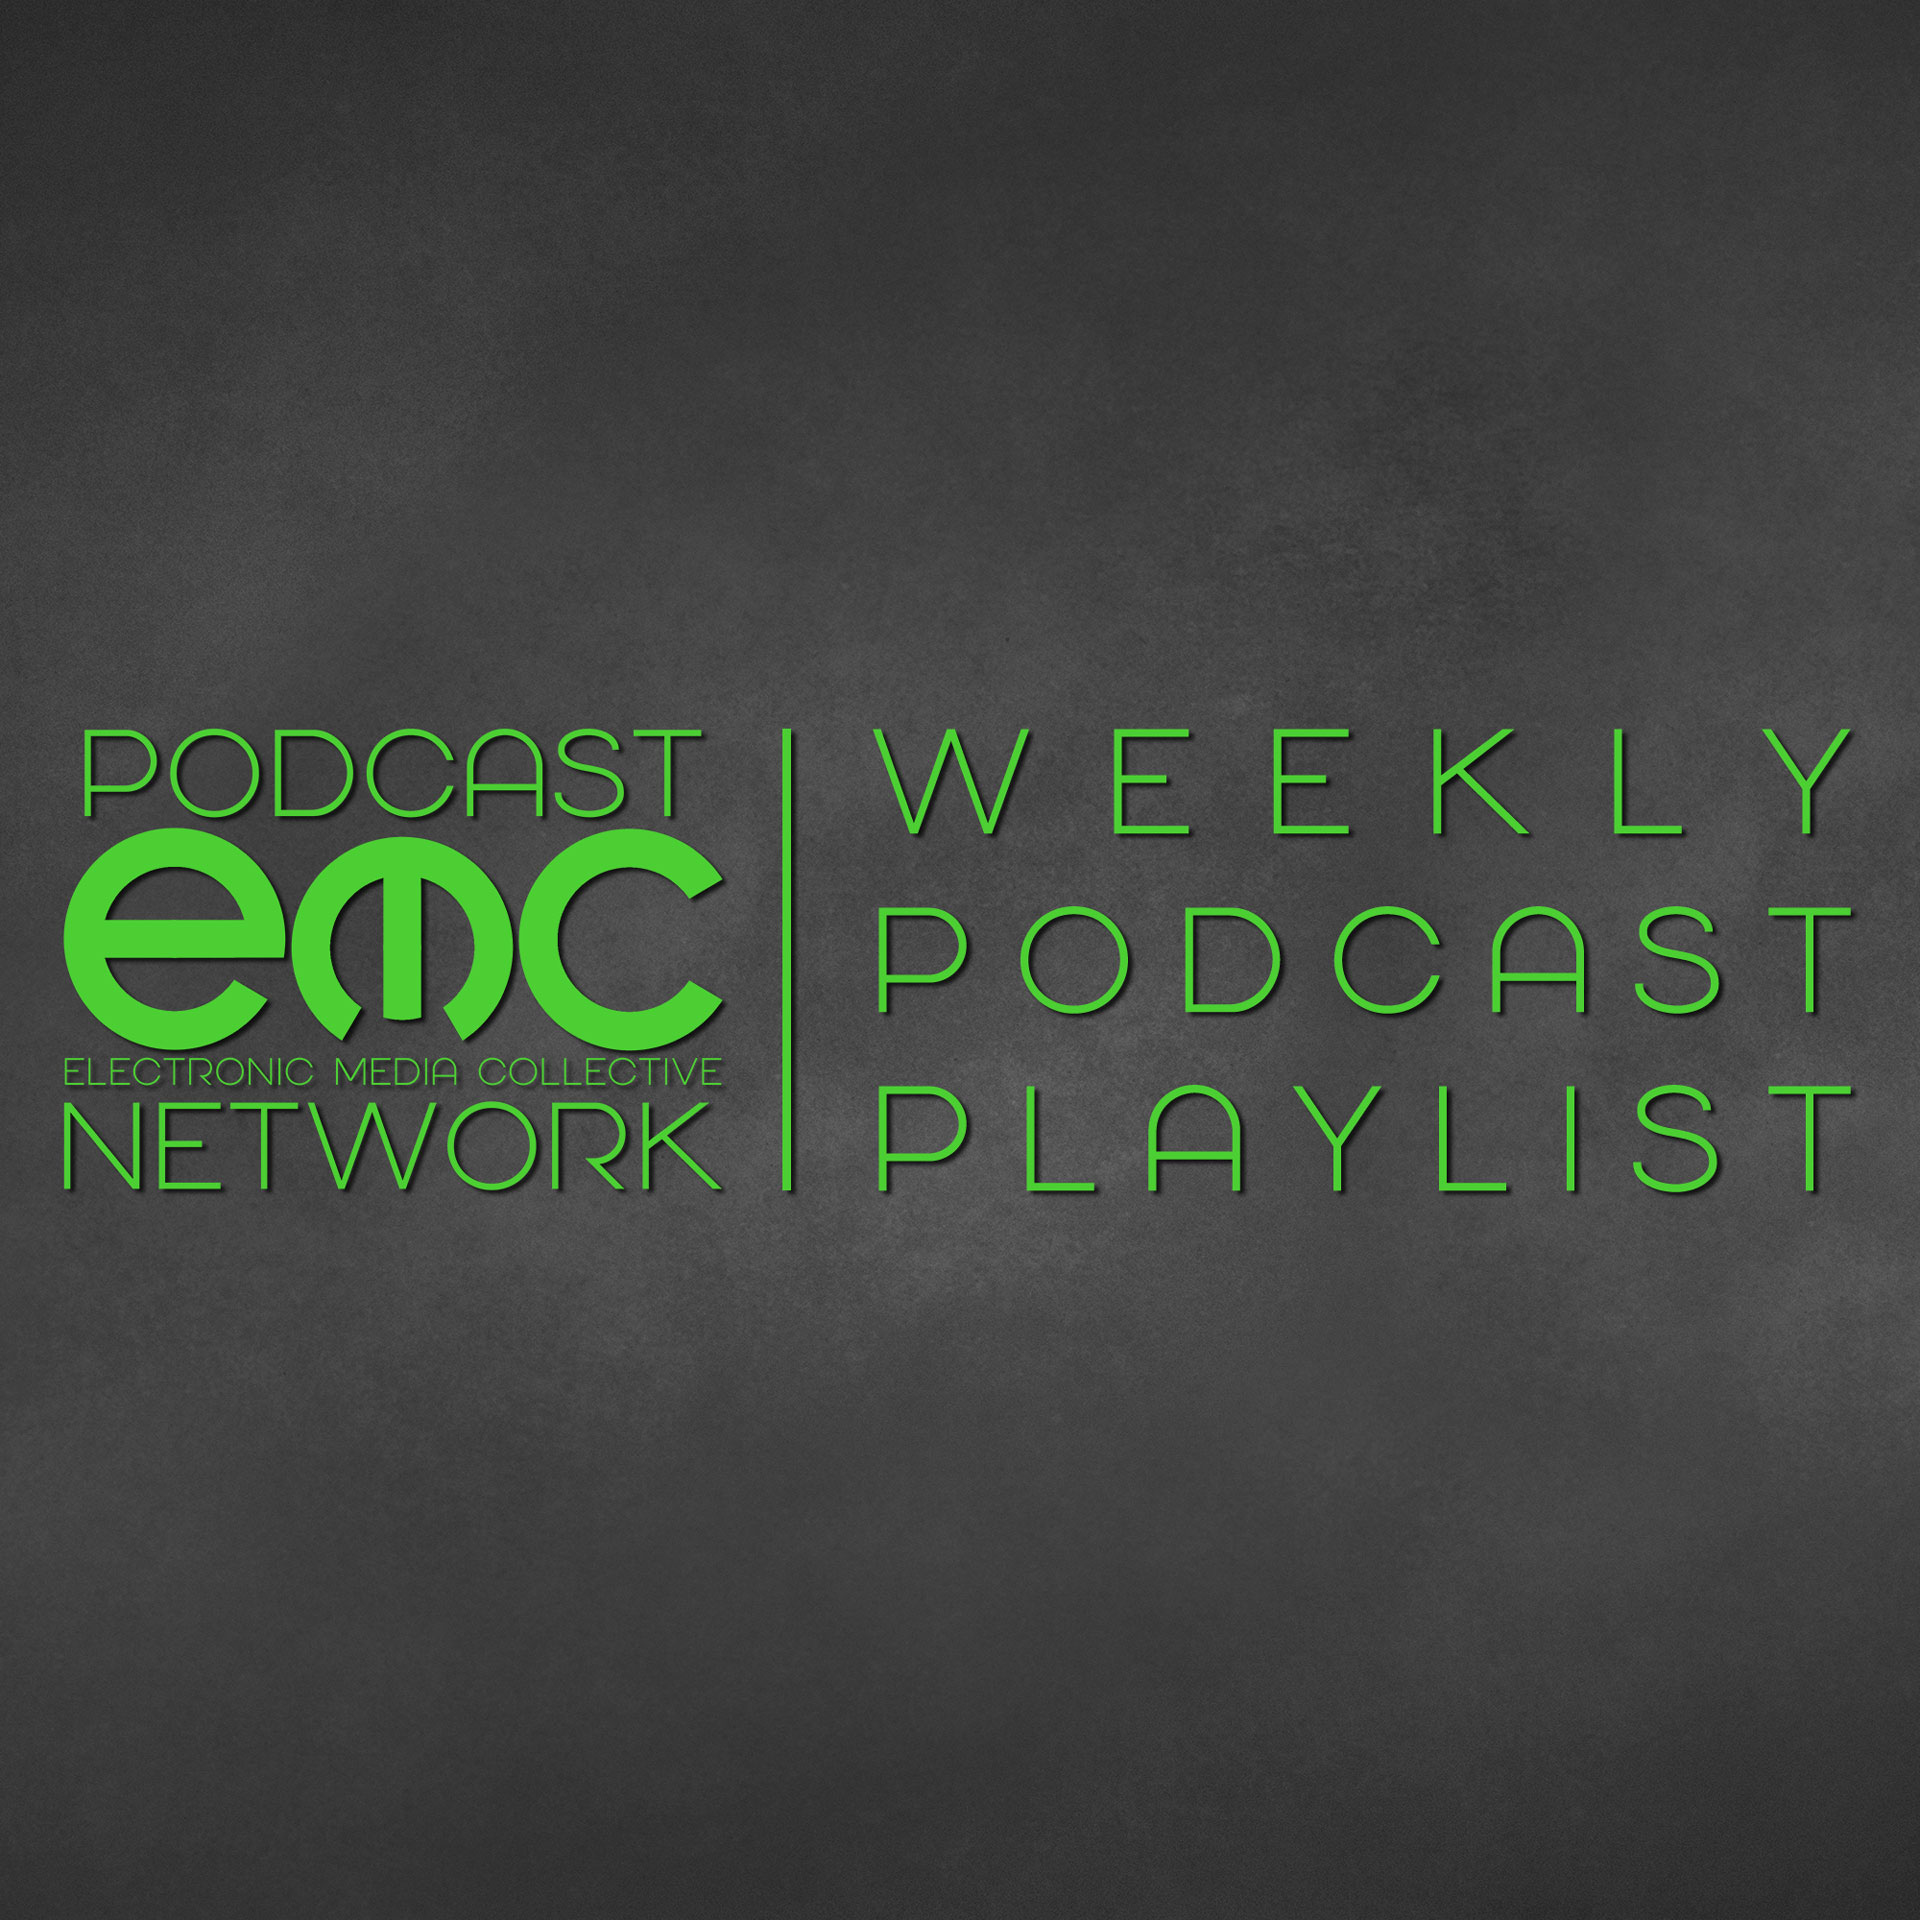 EMC Weekly Podcast Playlist